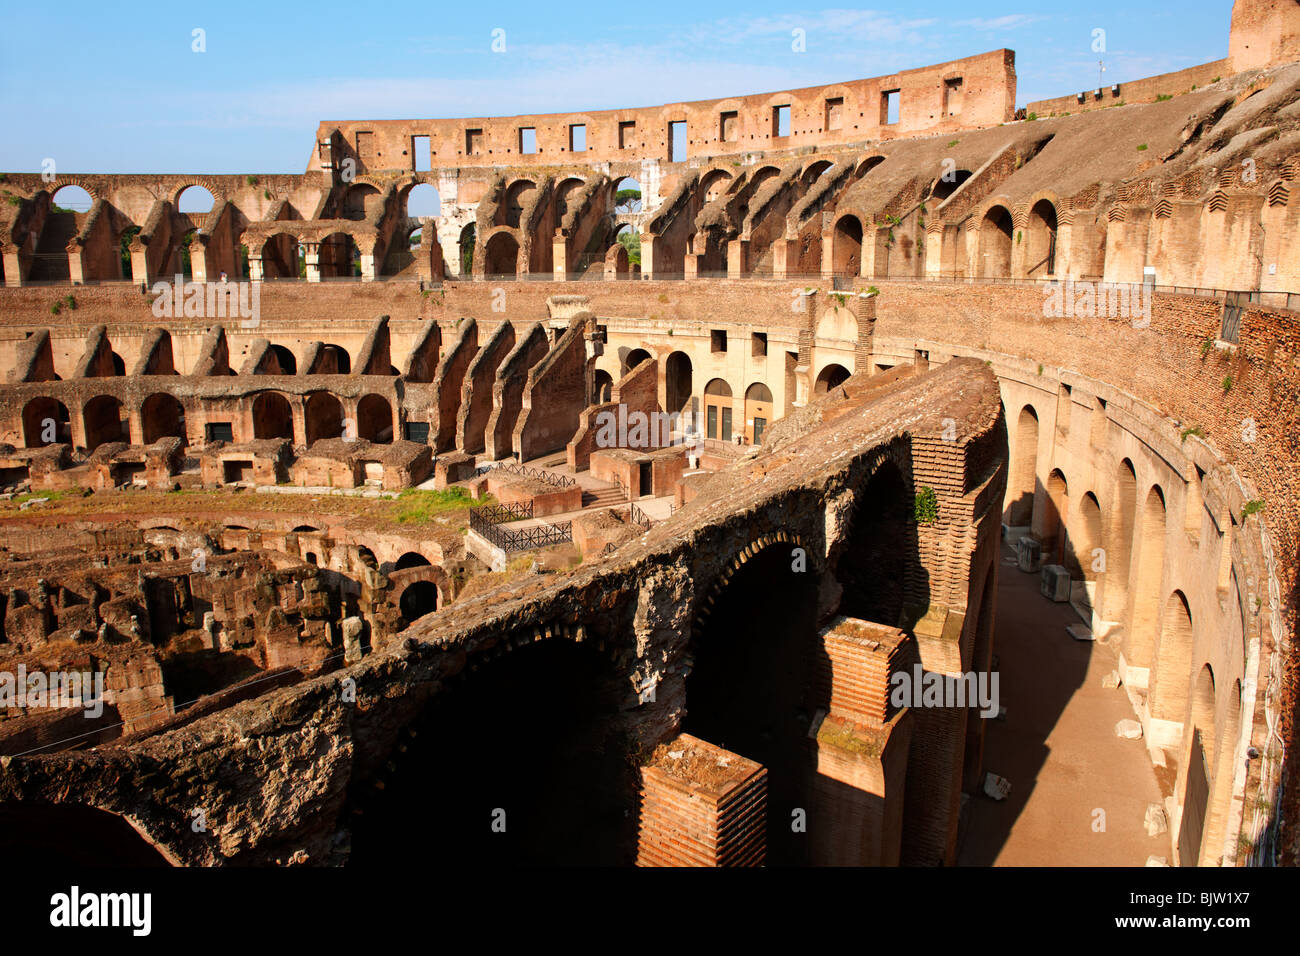 Le Colisée (Colosseo) . Rome Photo Stock